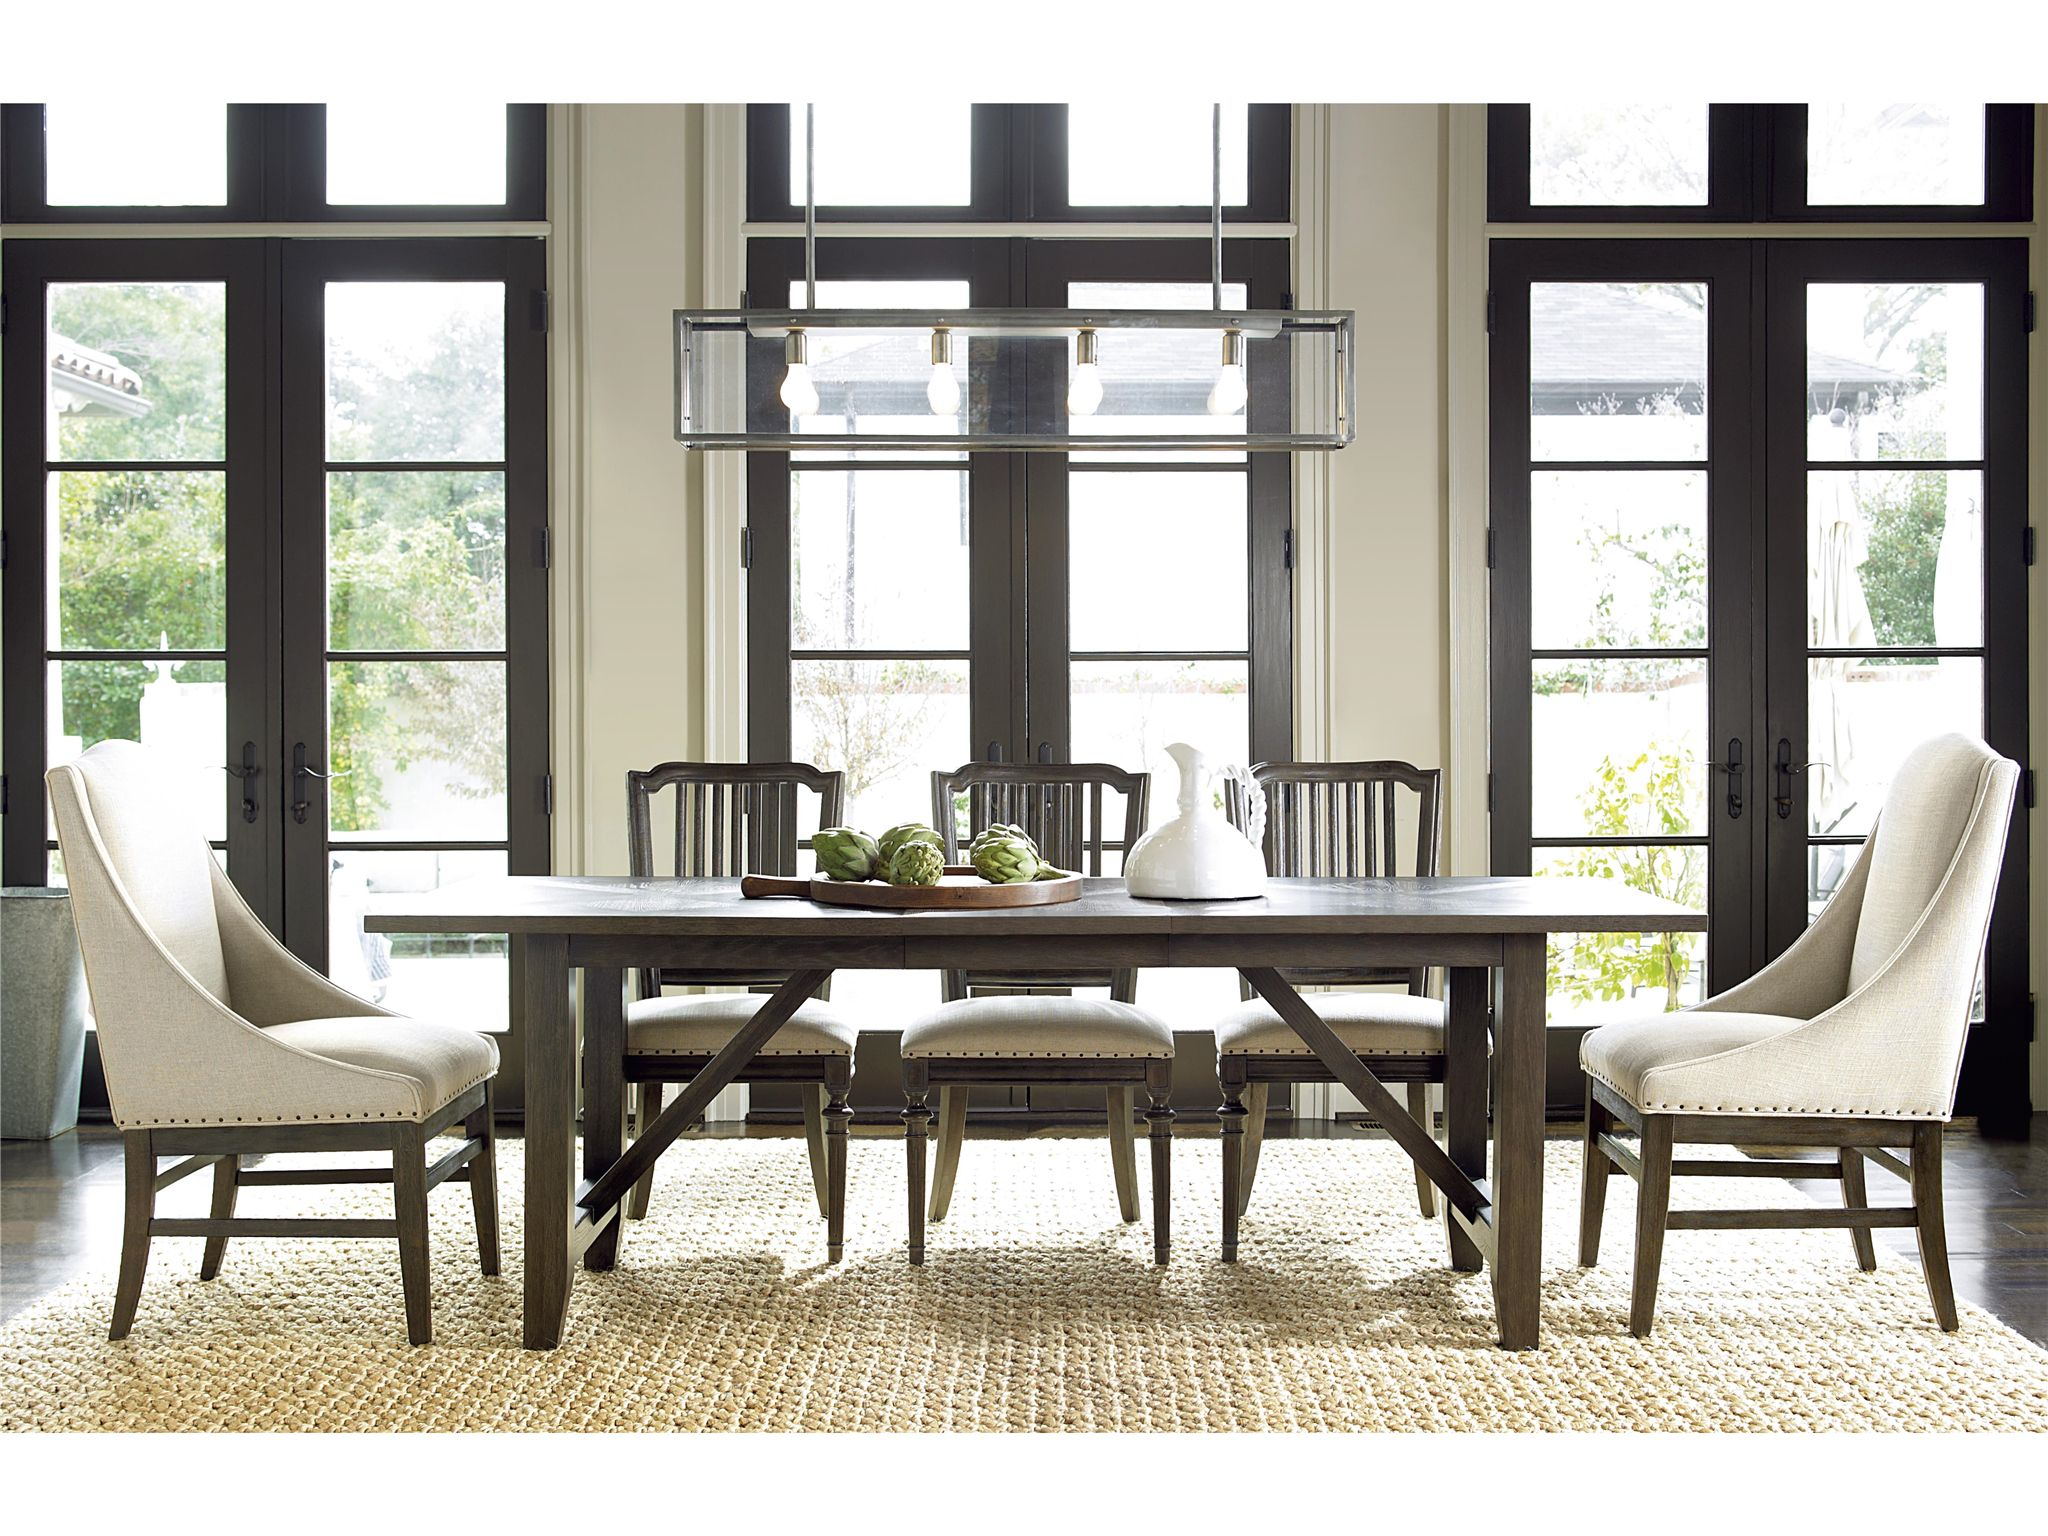 Universal Furniture  Curated  Chelsea Kitchen Table  Hamilton Enchanting Universal Furniture Dining Room Set Inspiration Design